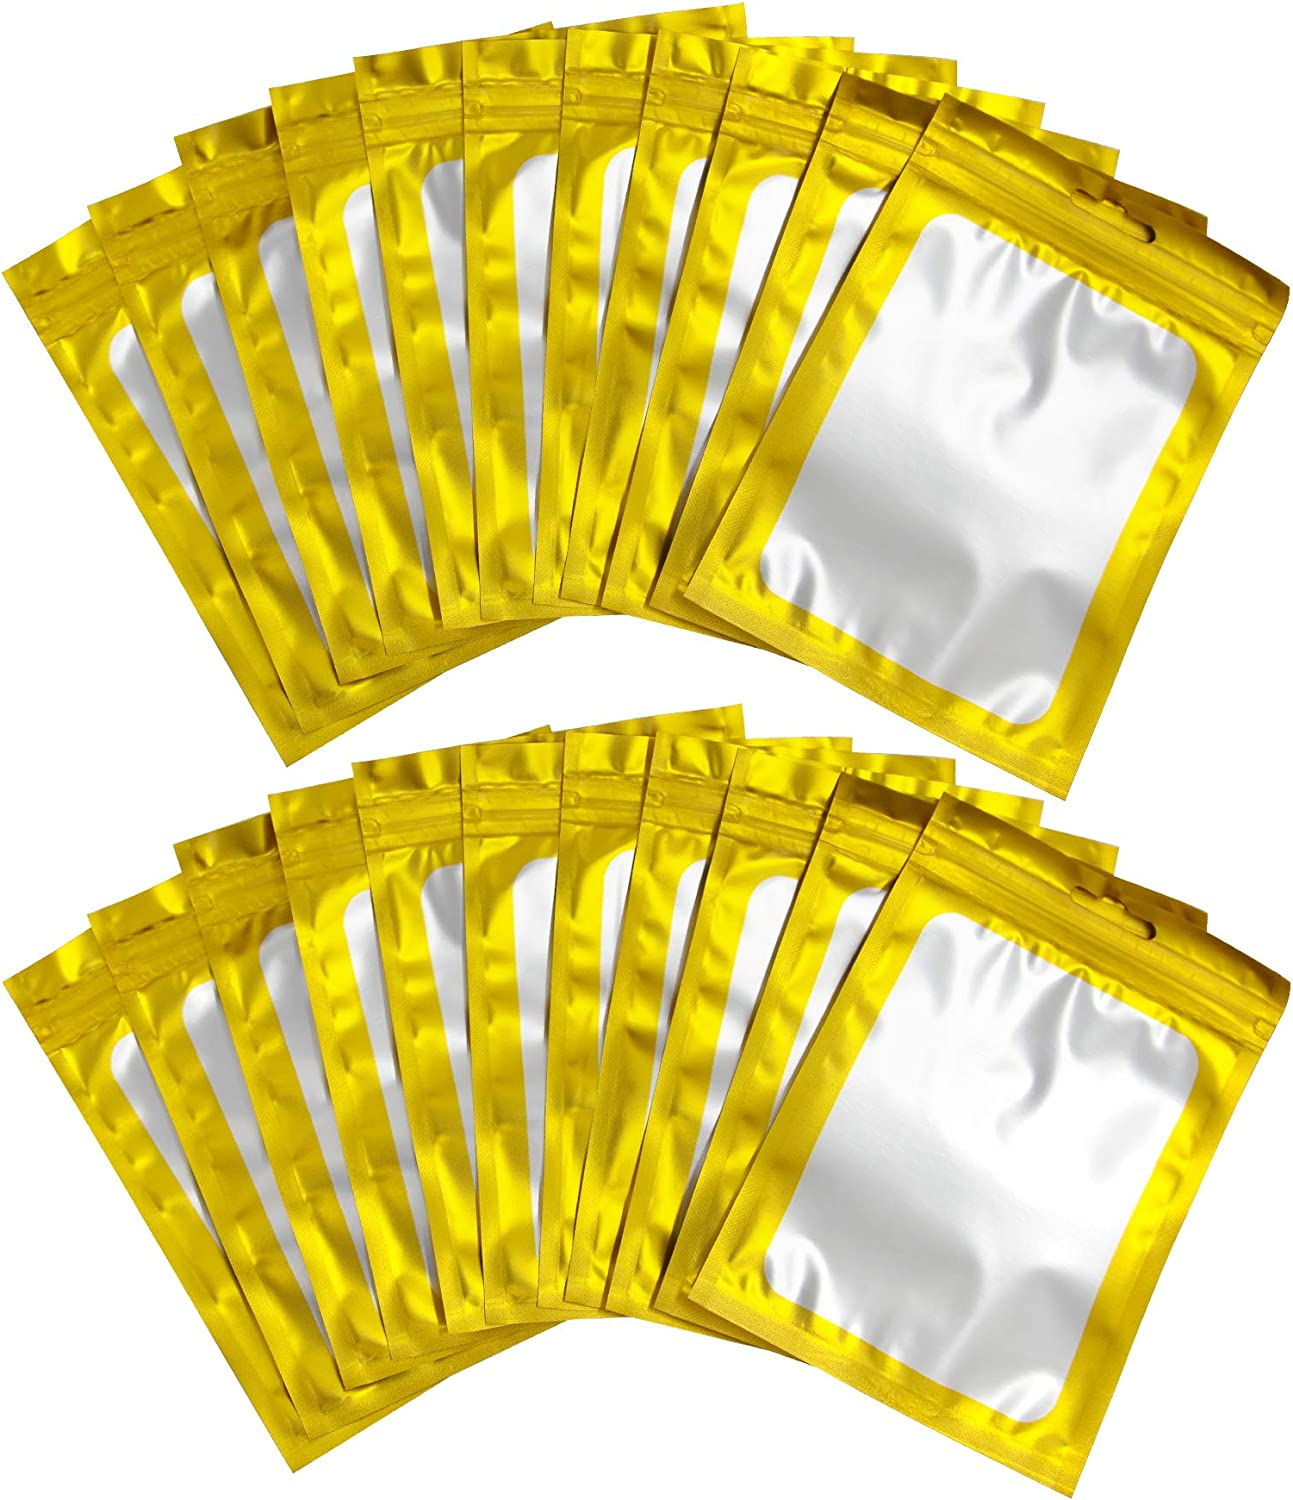 BQTQ 150 Pieces Smell Proof Bags Resealable Foil Ziplock Bags Flat Foil Bags Food Storage Pouch(Gold, 4 x 6 Inch)